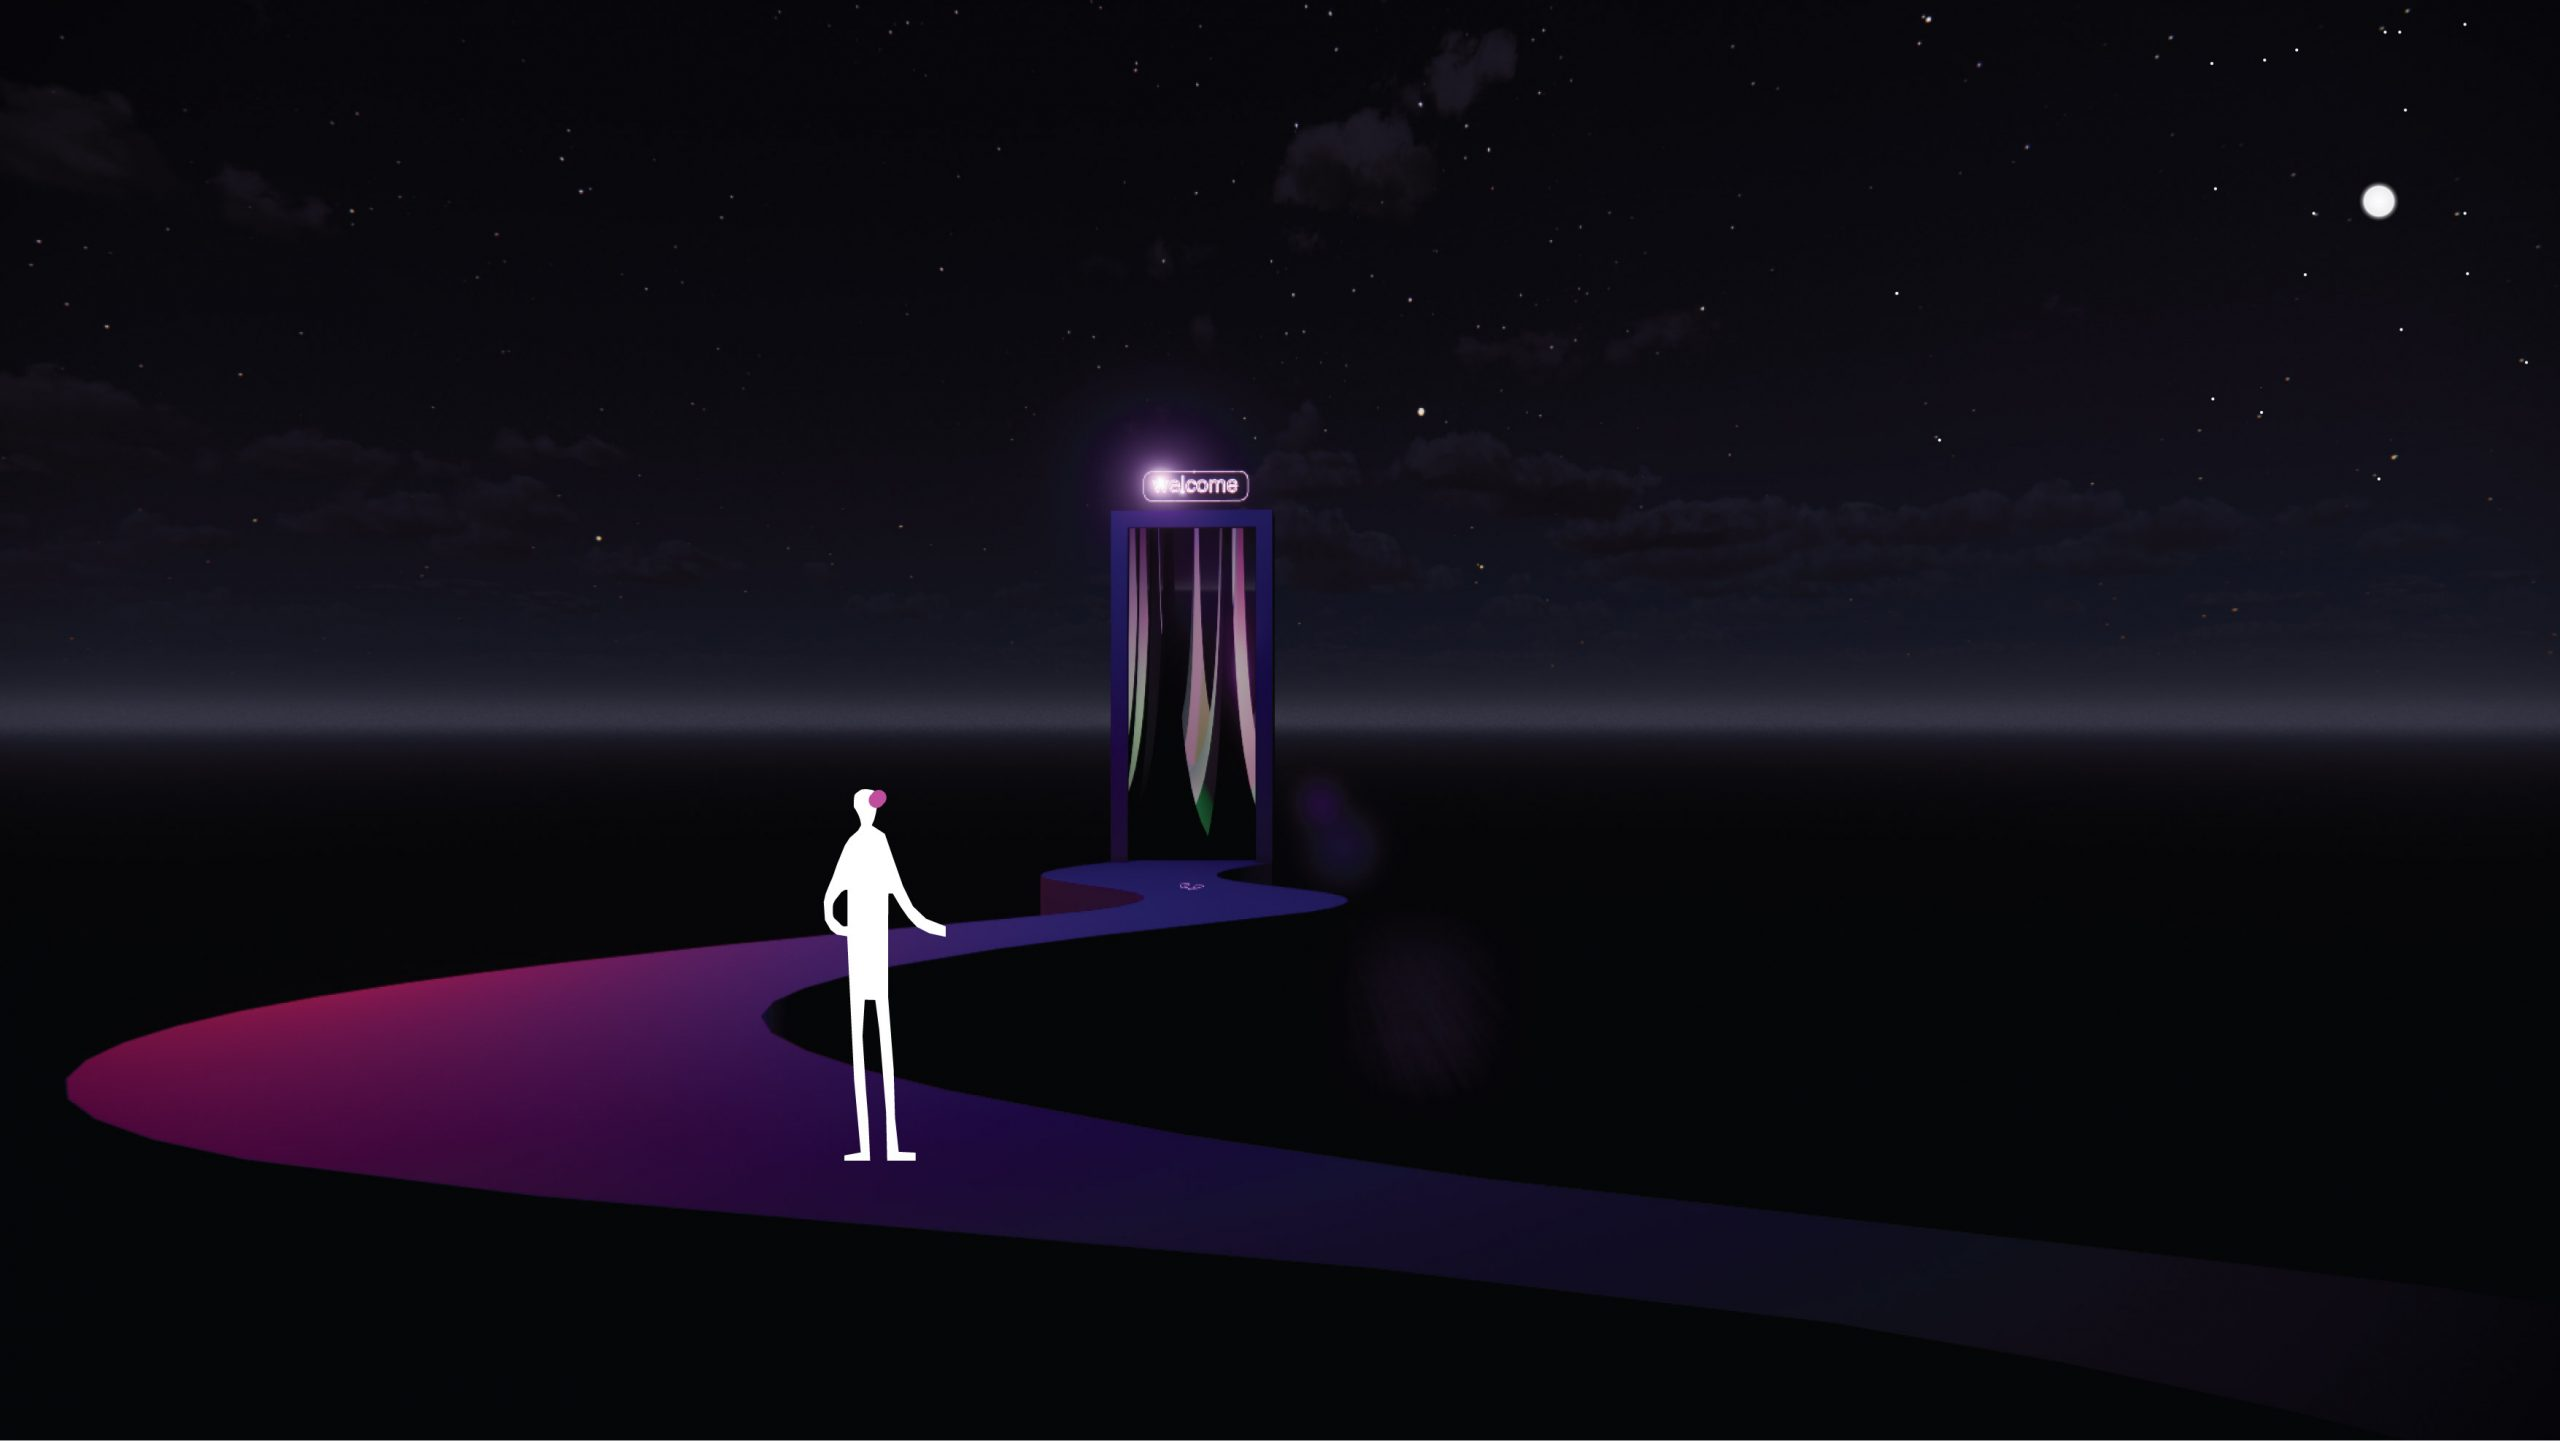 Architecture as Level Design – The Lighthouse